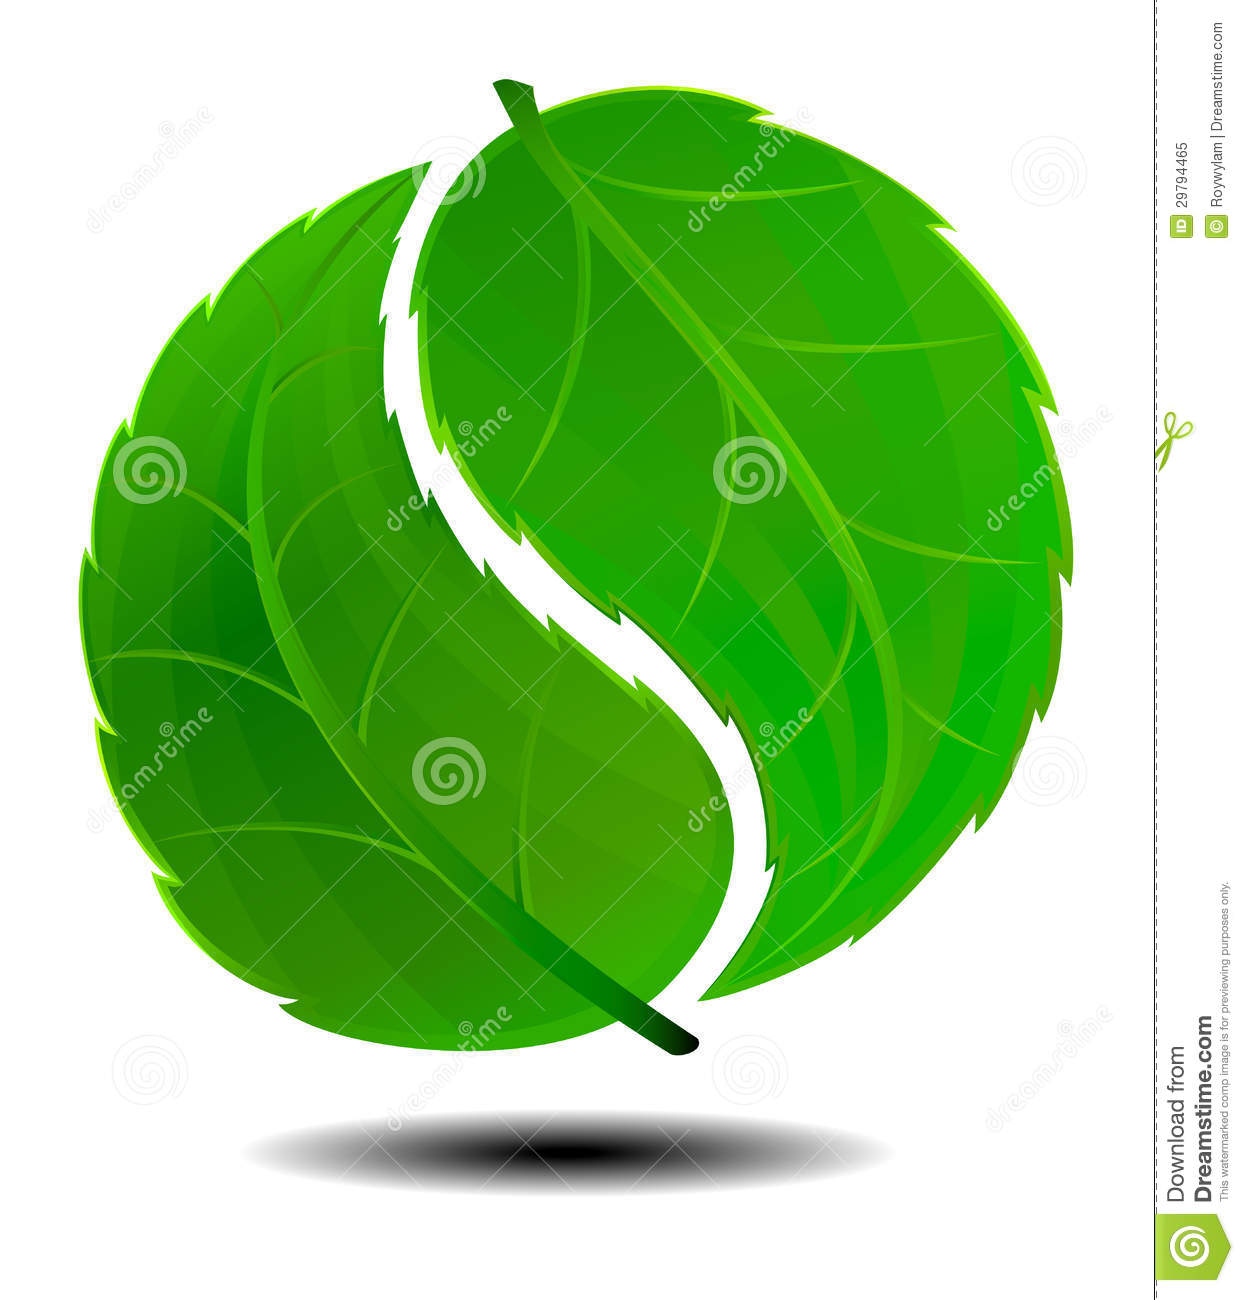 Yin yang green symbol logo stock vector image of growth Green plans